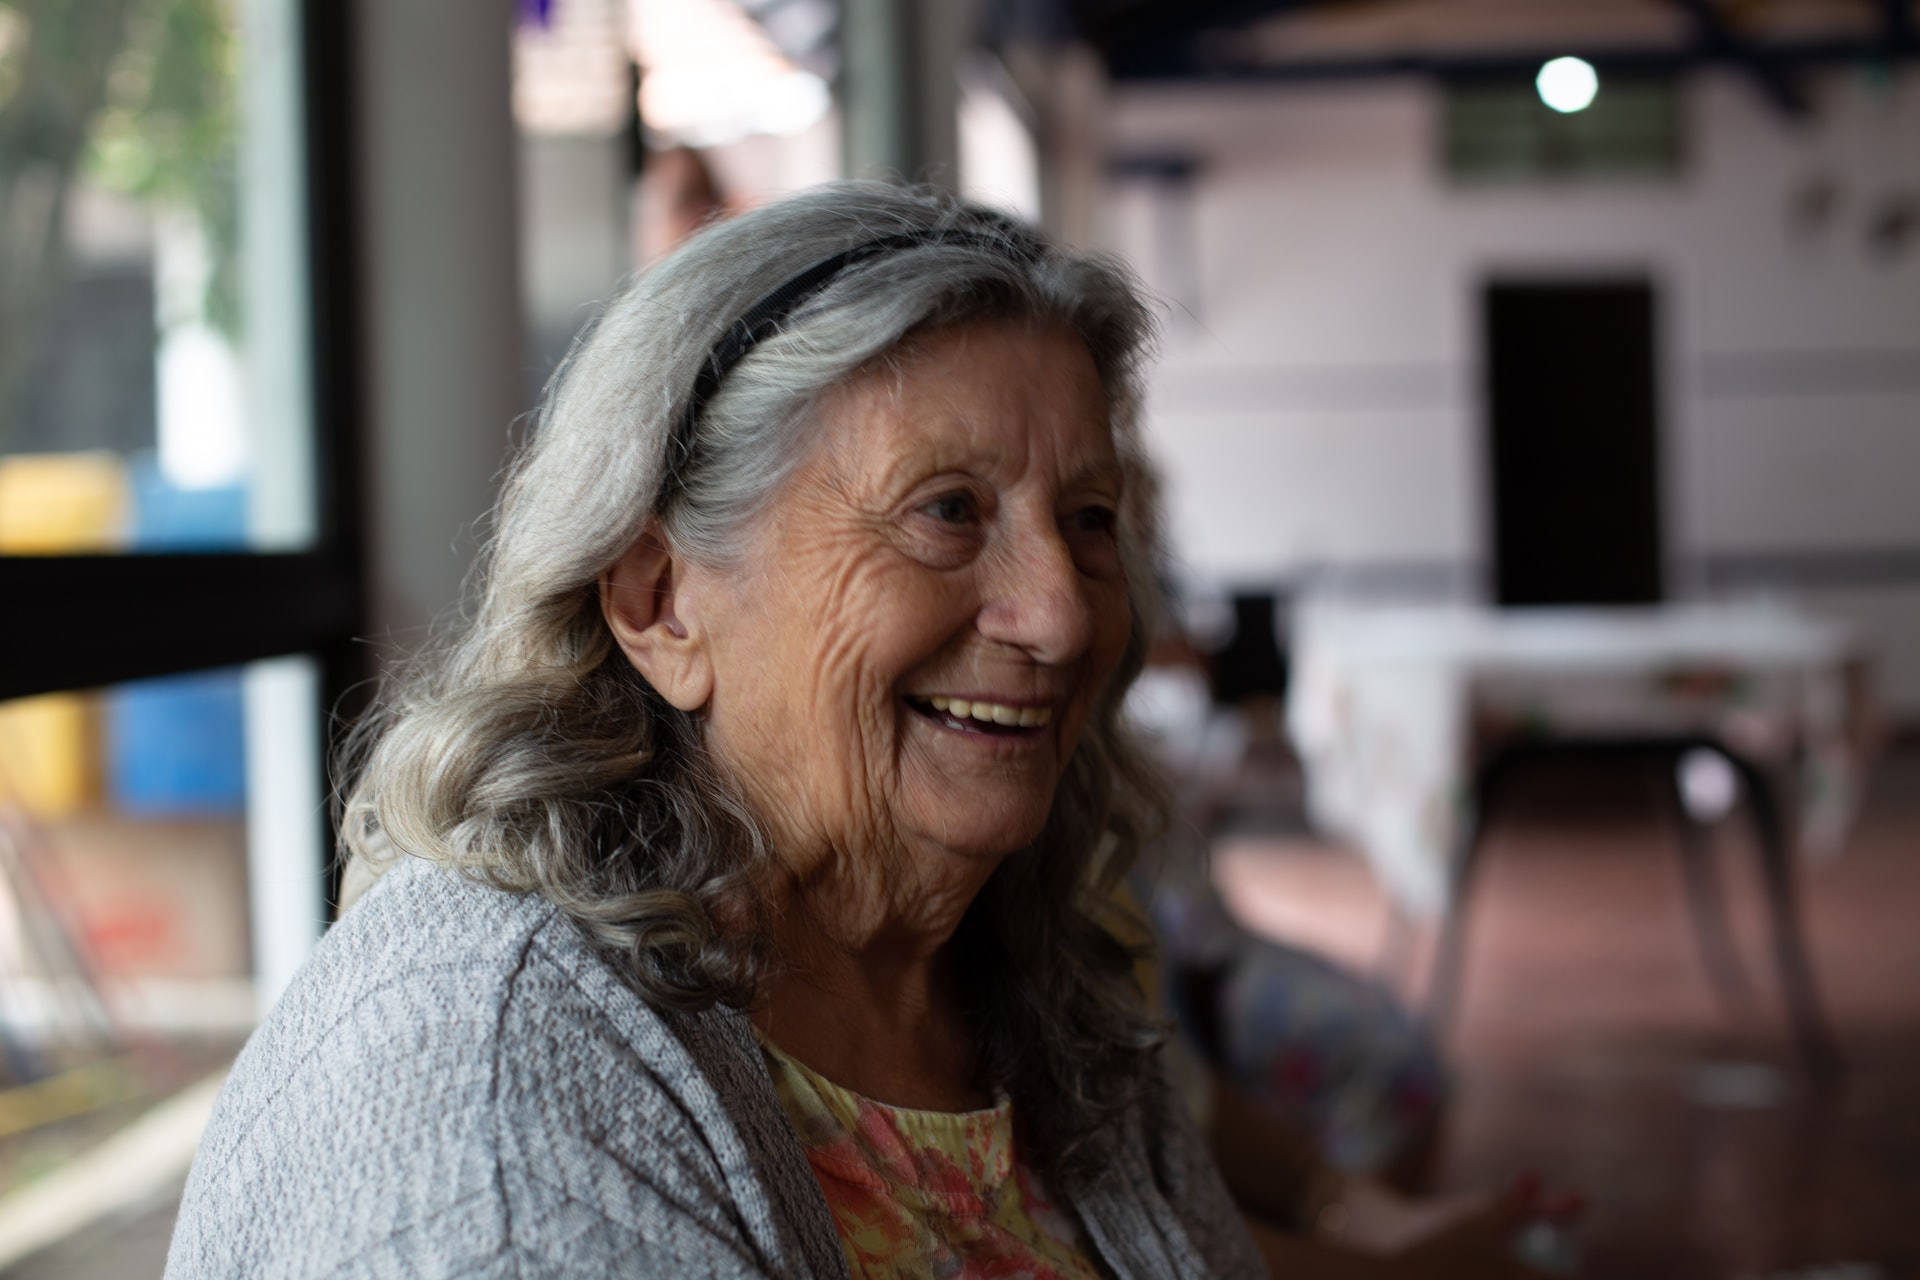 Why is it important to spread awareness about aging and Meno-pause